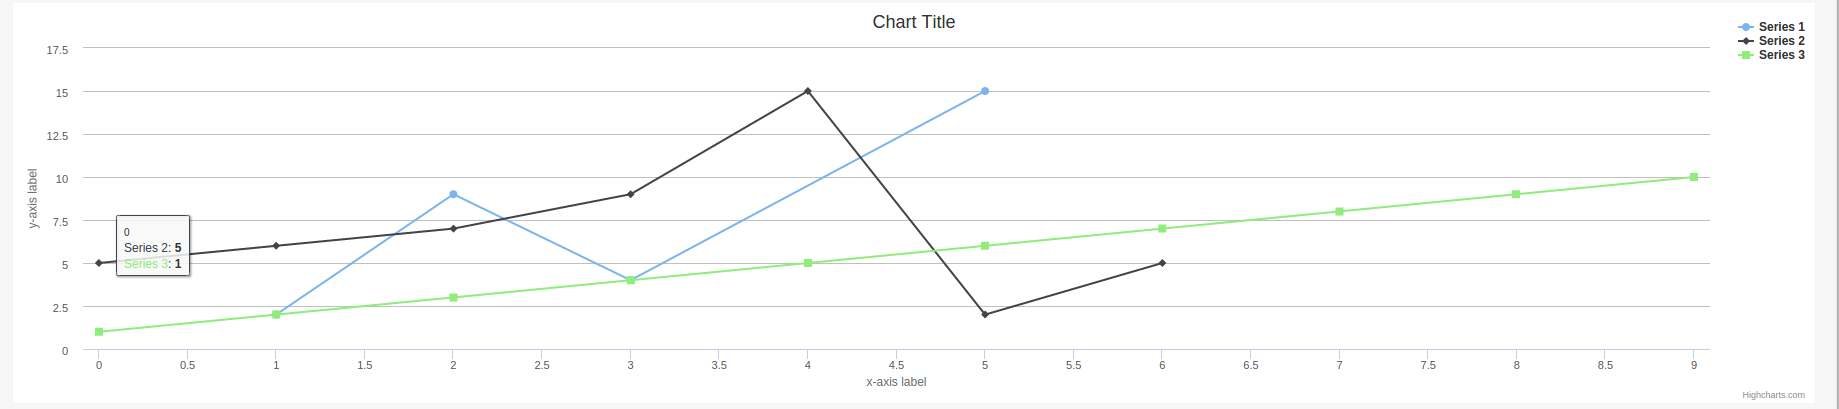 Adding interactive charts to web pages using Highcharts | TO